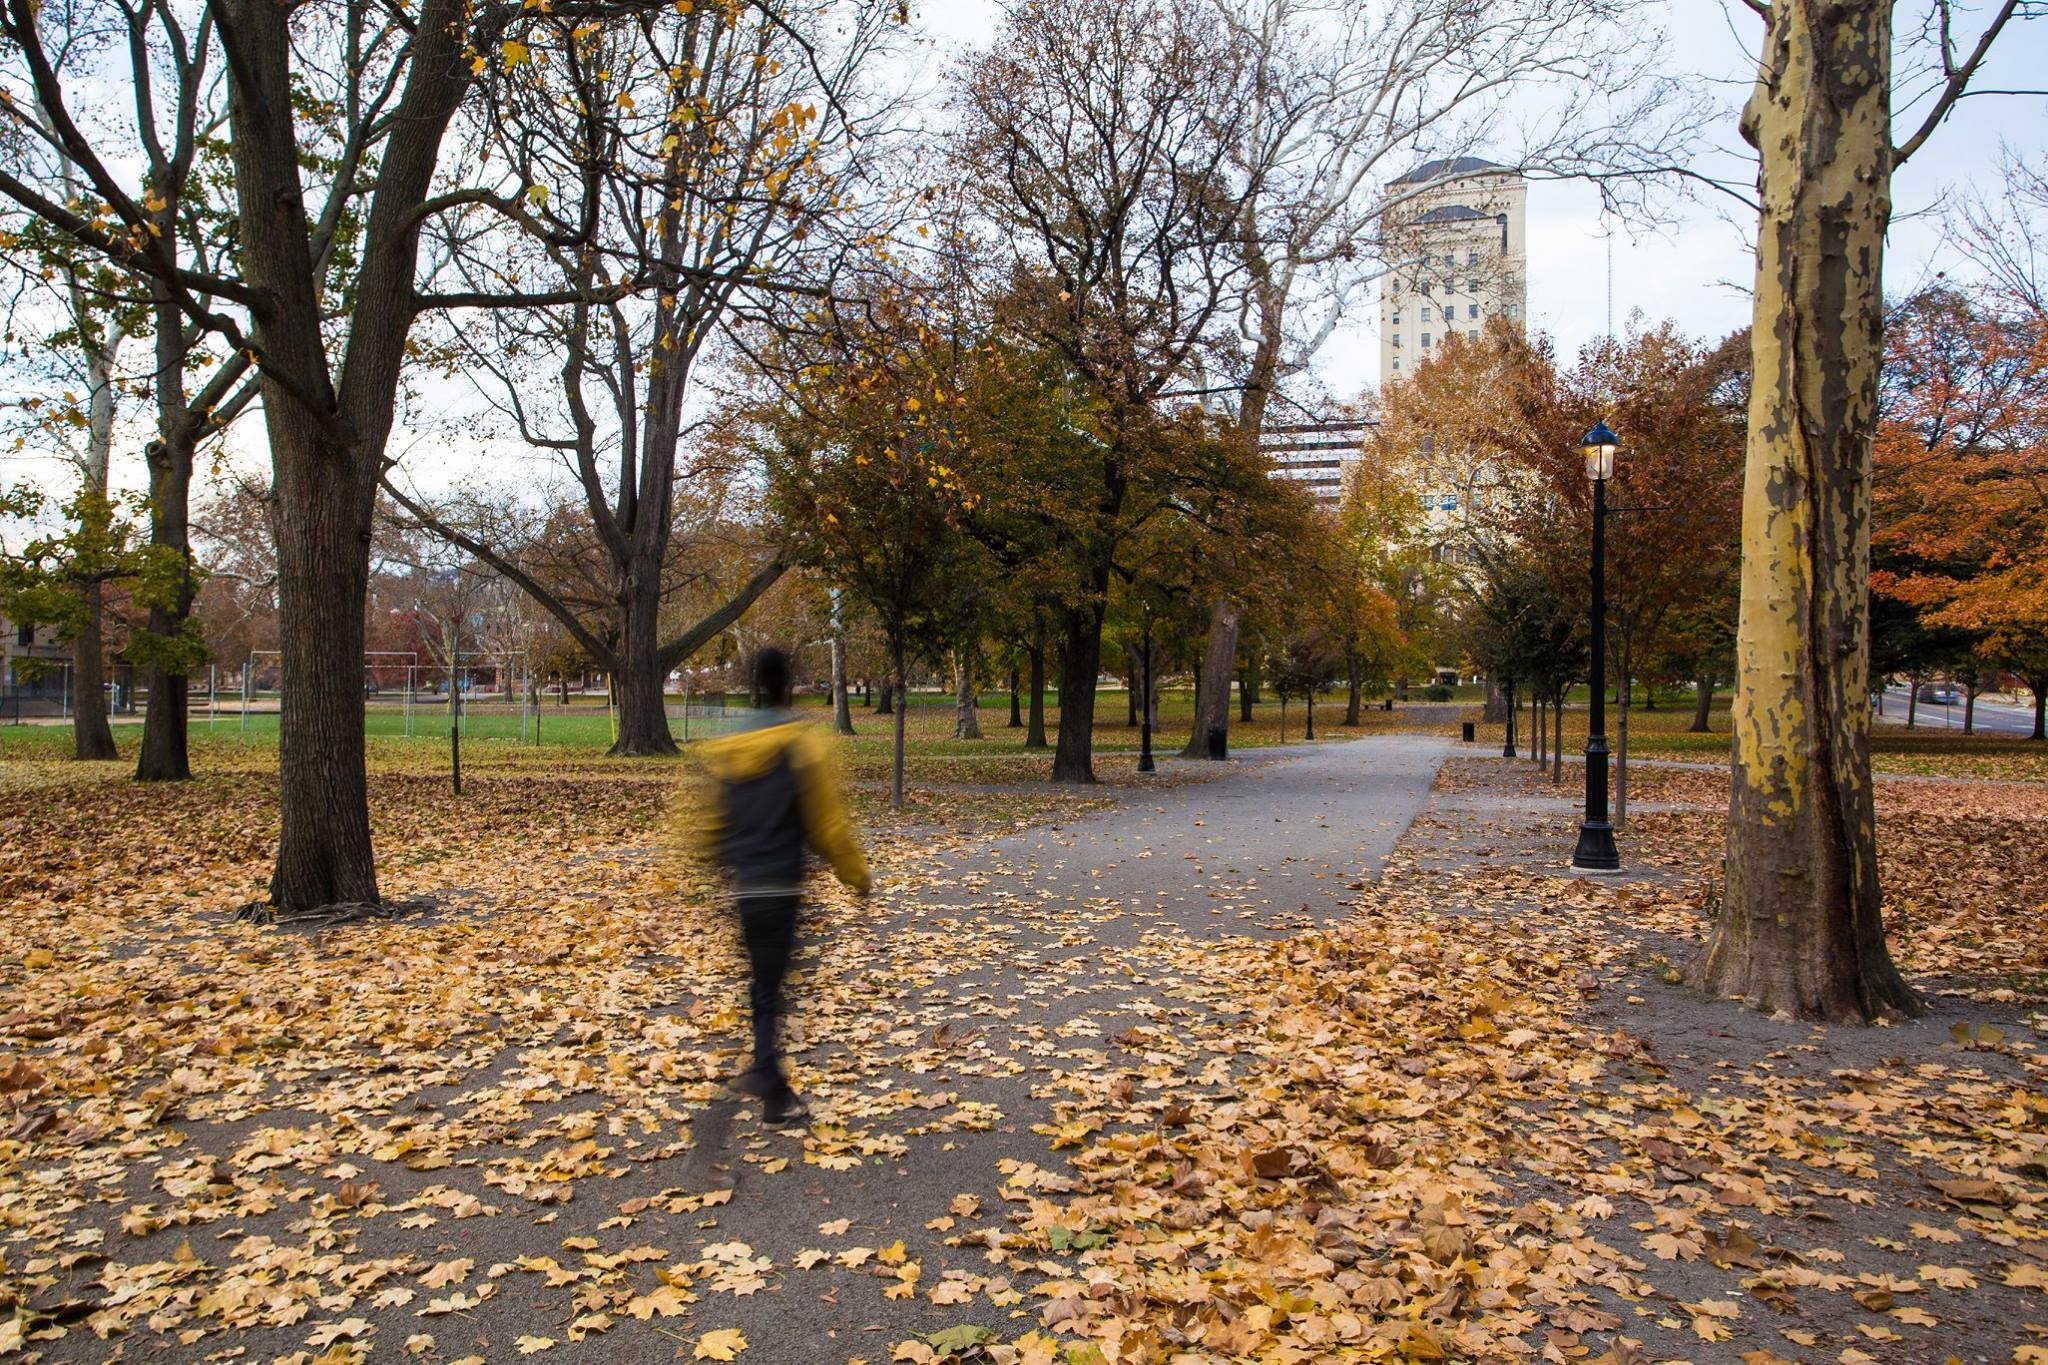 Blurry image of a person walking in Allegheny Commons during autumn